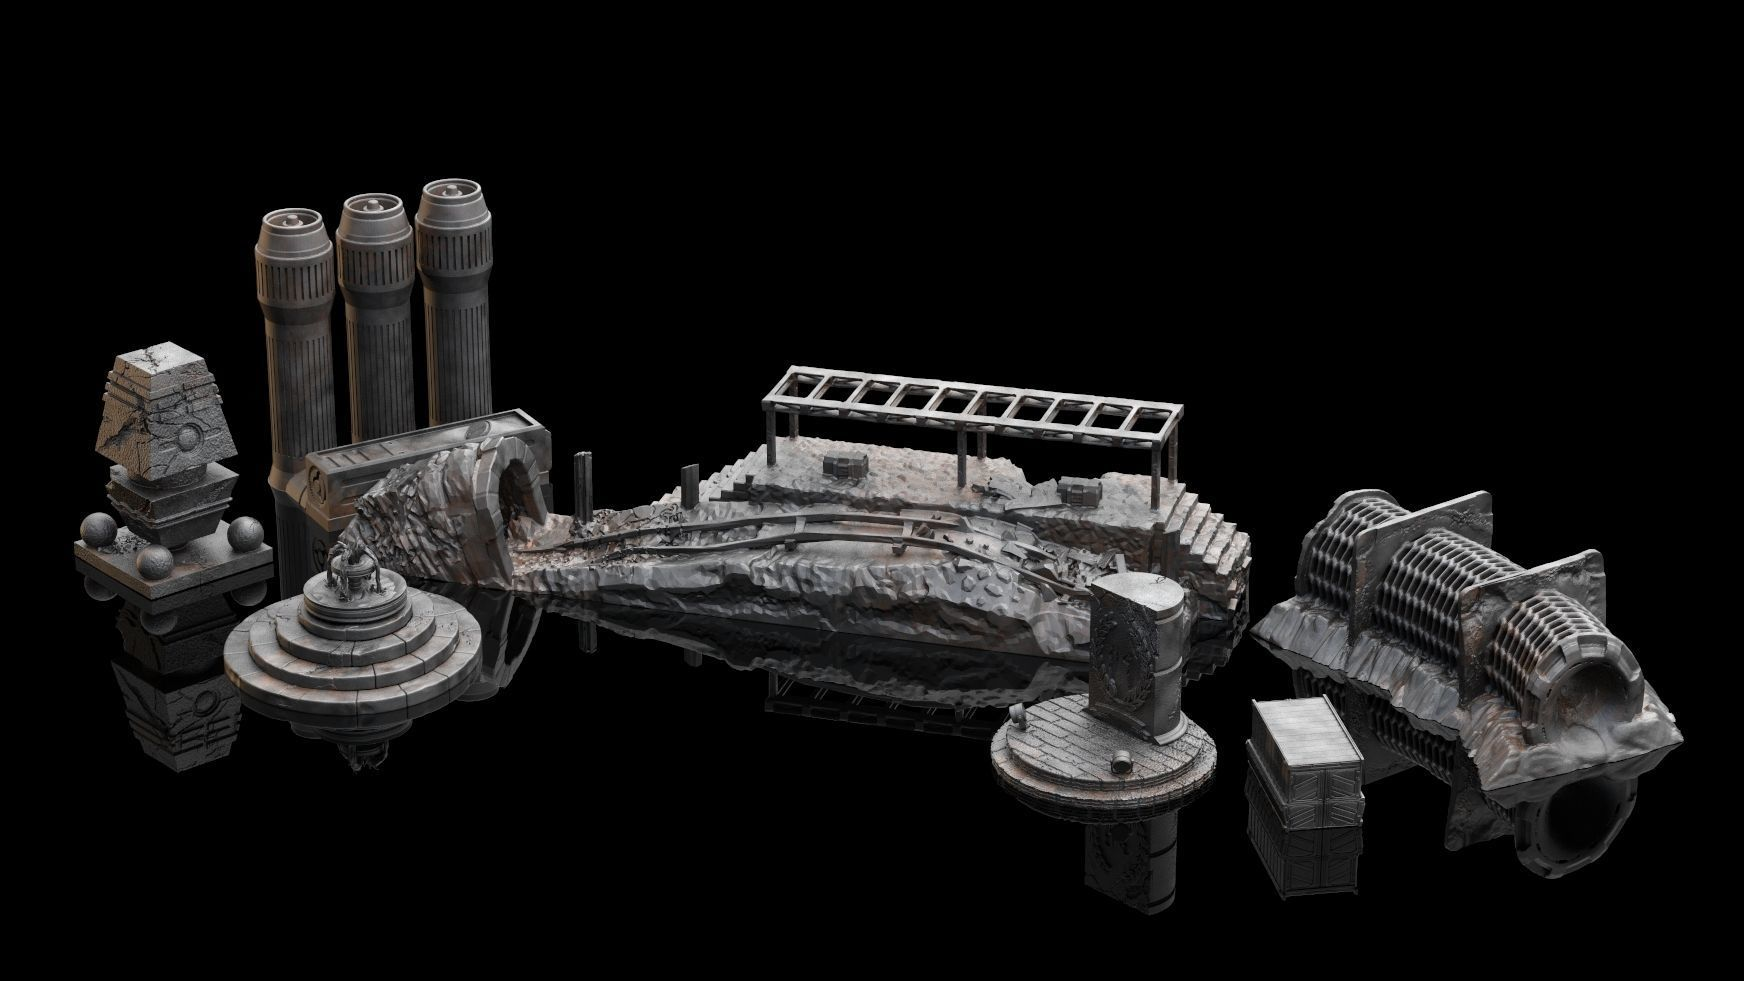 image relating to Free 3d Printable Terrain named Wargaming Terrain - City Landscape 3D Printable Constructions 3D Print Design and style